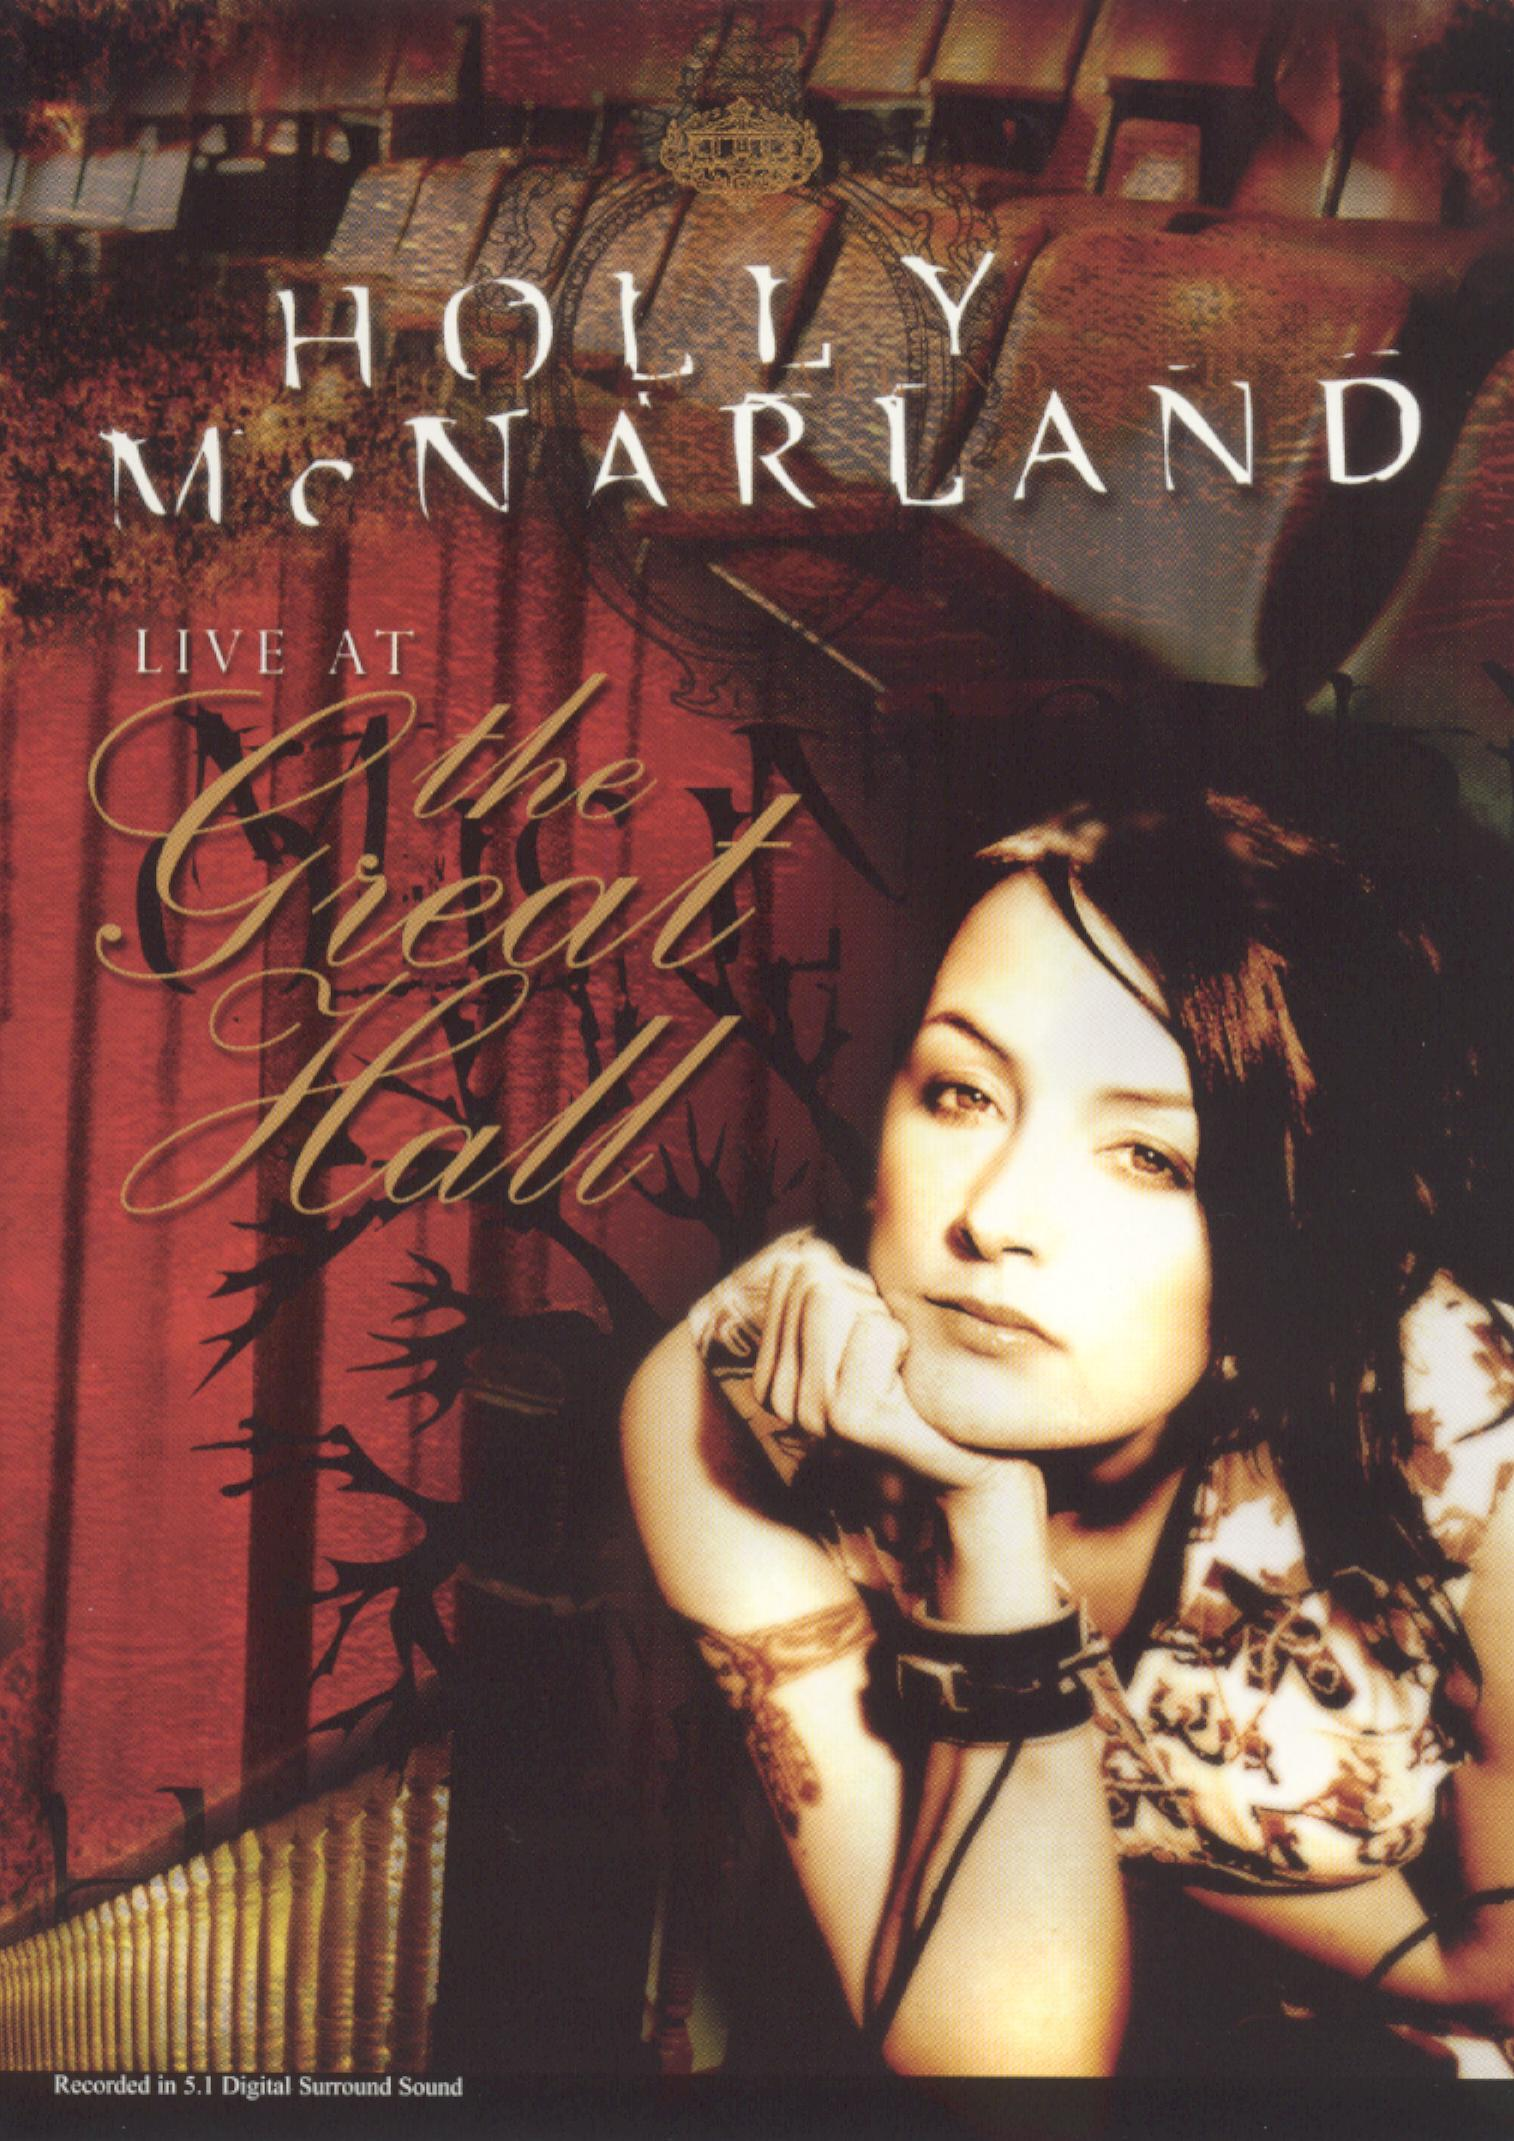 Holly McNarland: Live at the Great Hall